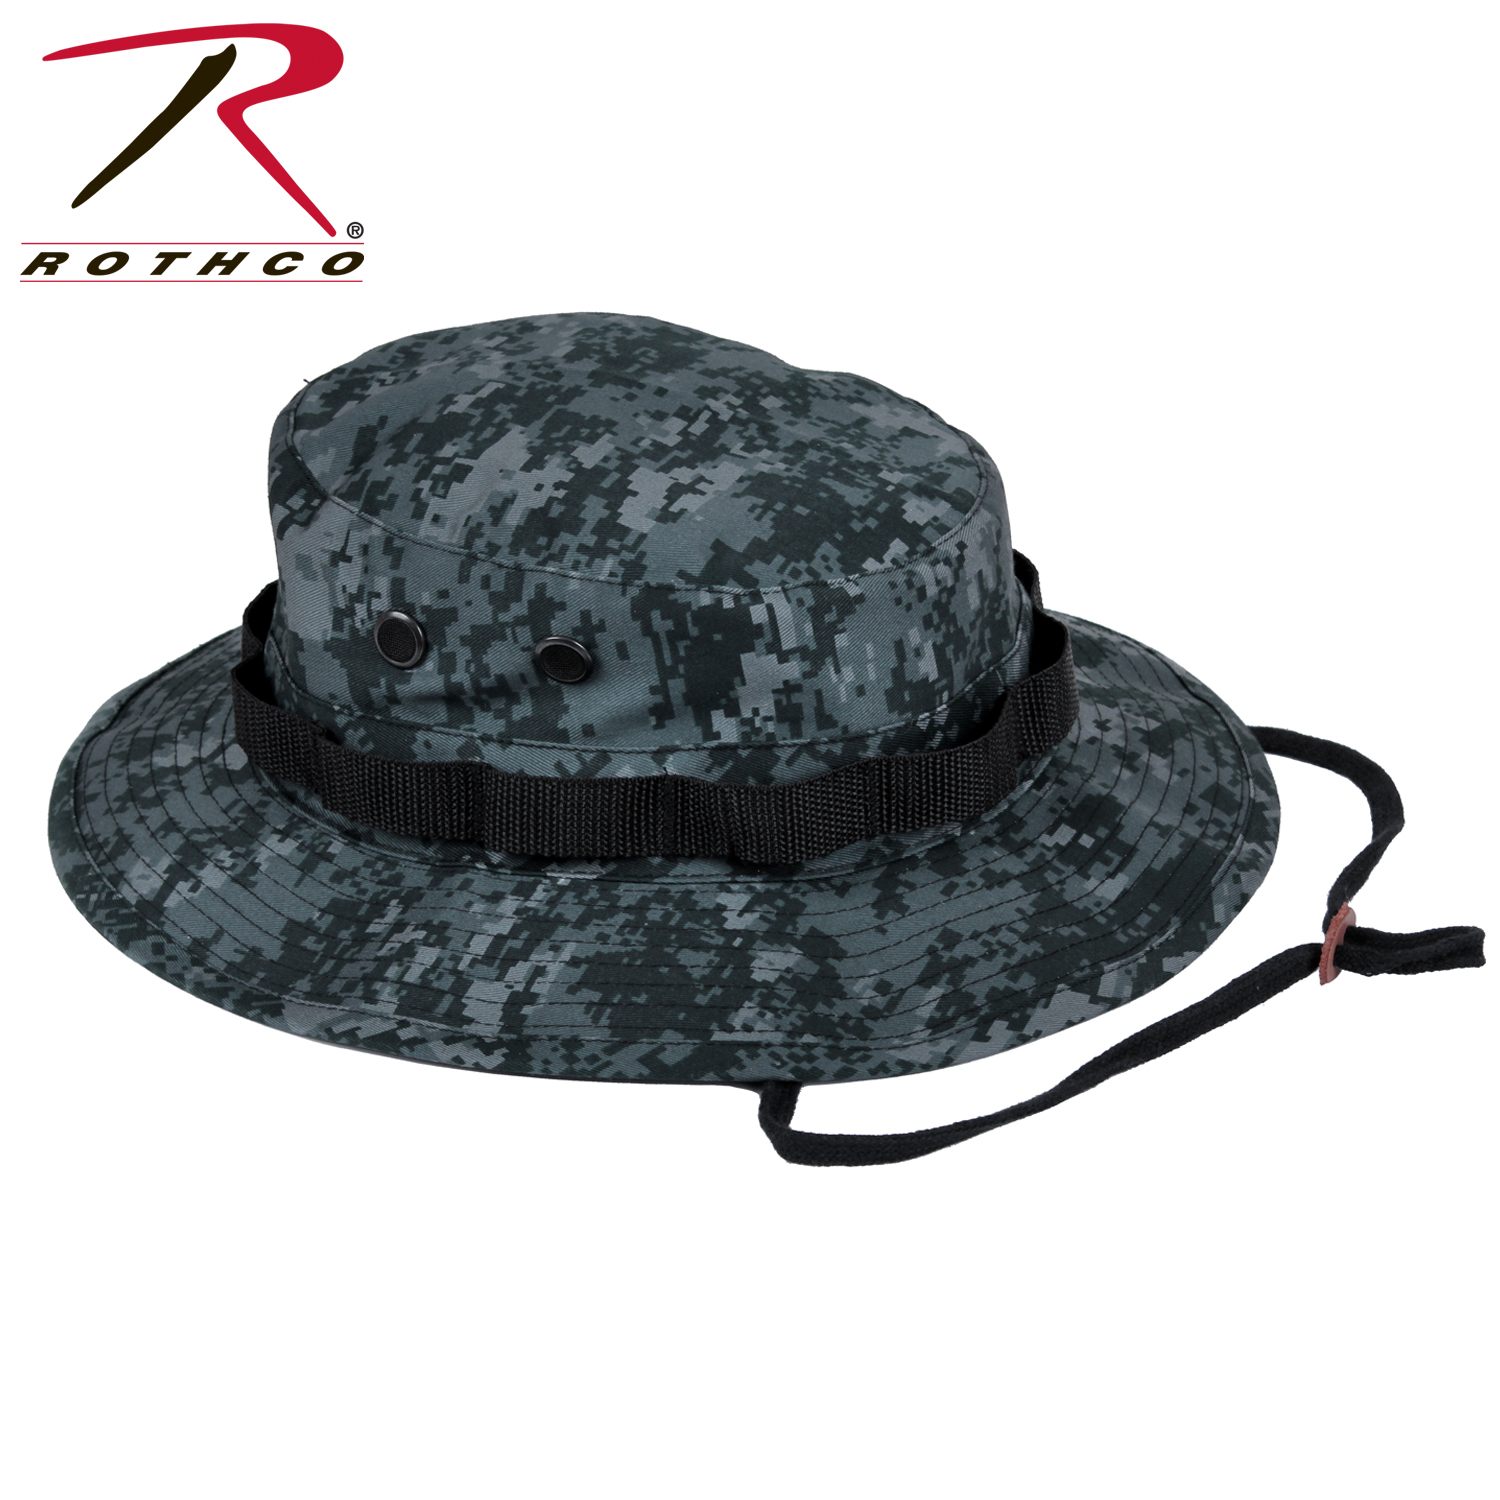 Details about Rothco 55830 Digital Camo Boonie Hat - Midnite Digital Camo b1c5b01003d4